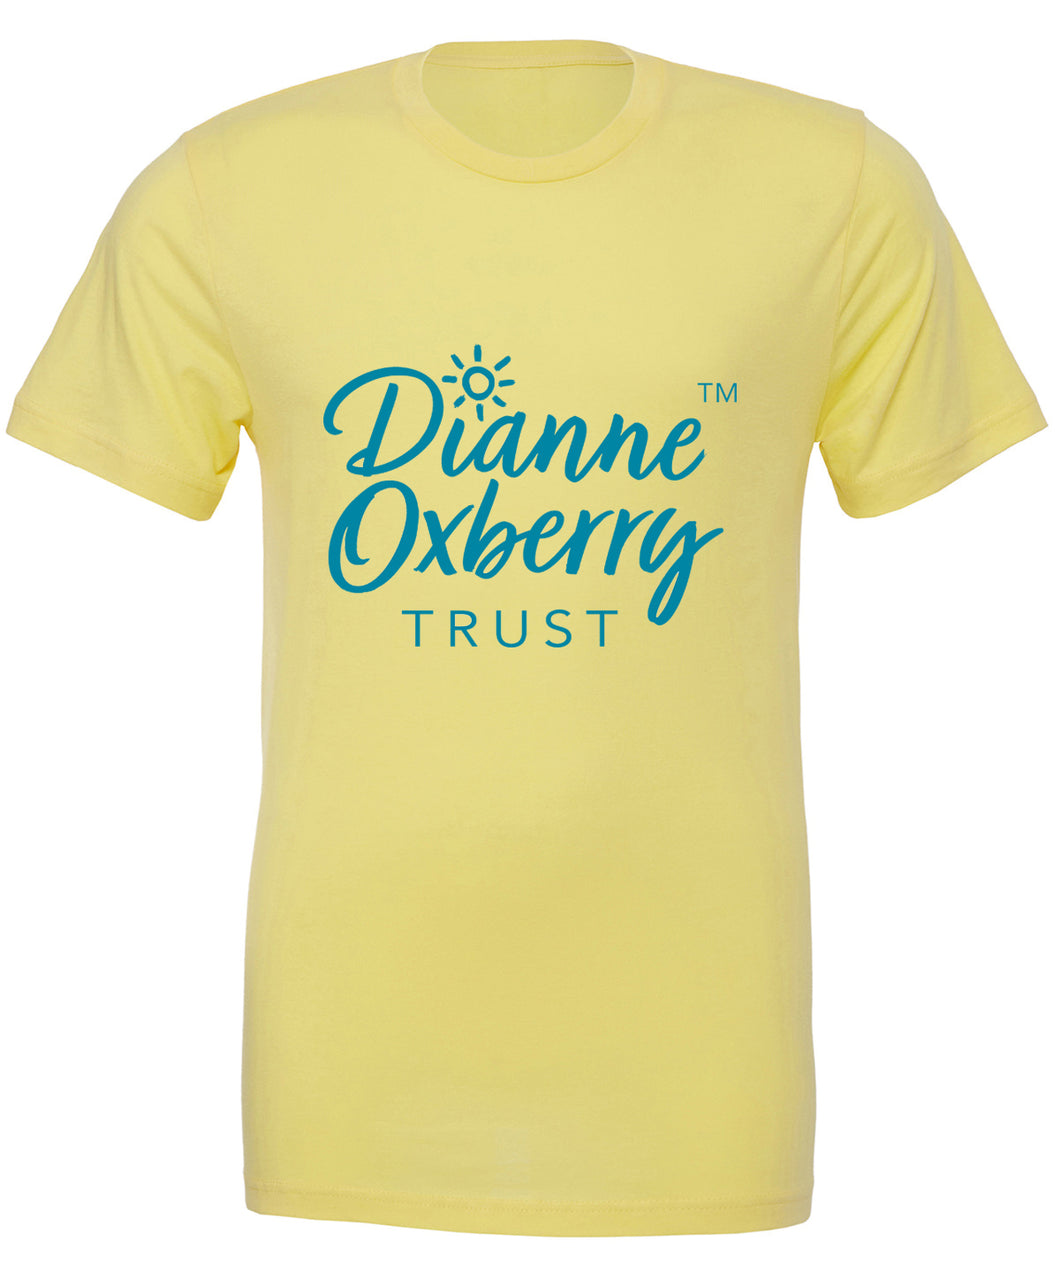 Dianne Oxberry Trust T-Shirt